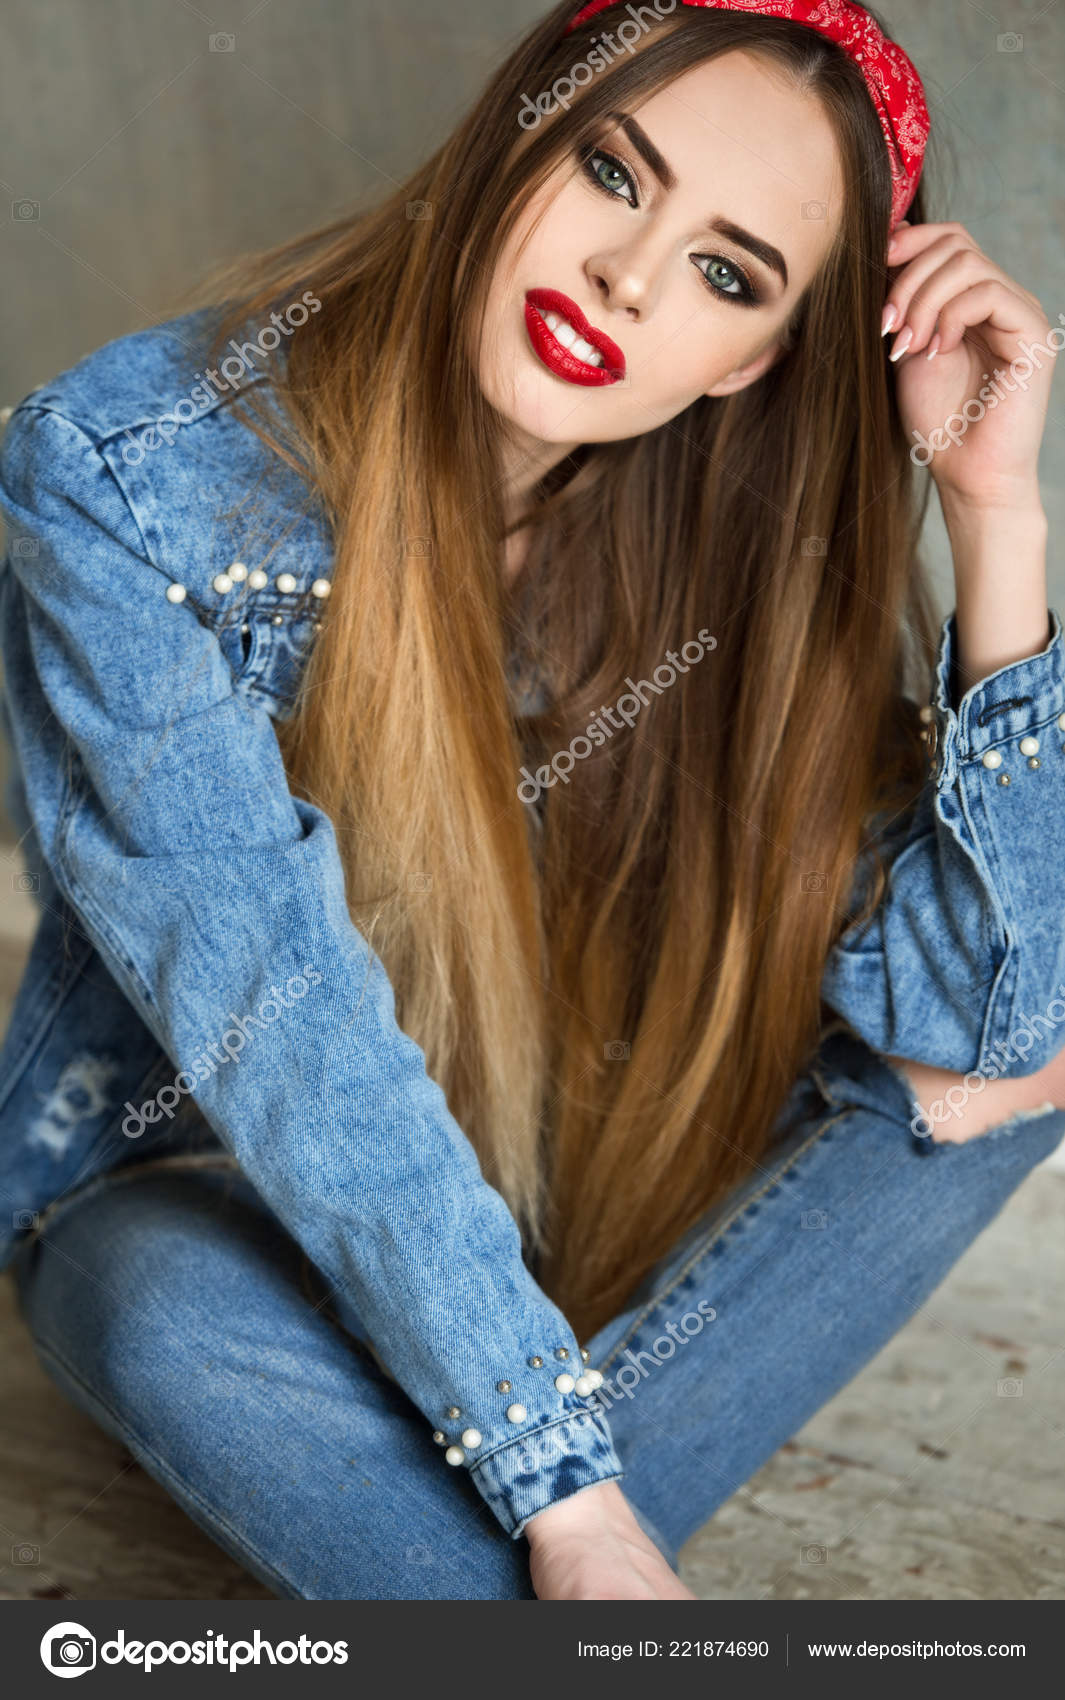 abdde4ec124 Beautiful woman in glasses and red bandana and jeans shirt. Beautiful girl  with pretty smile.